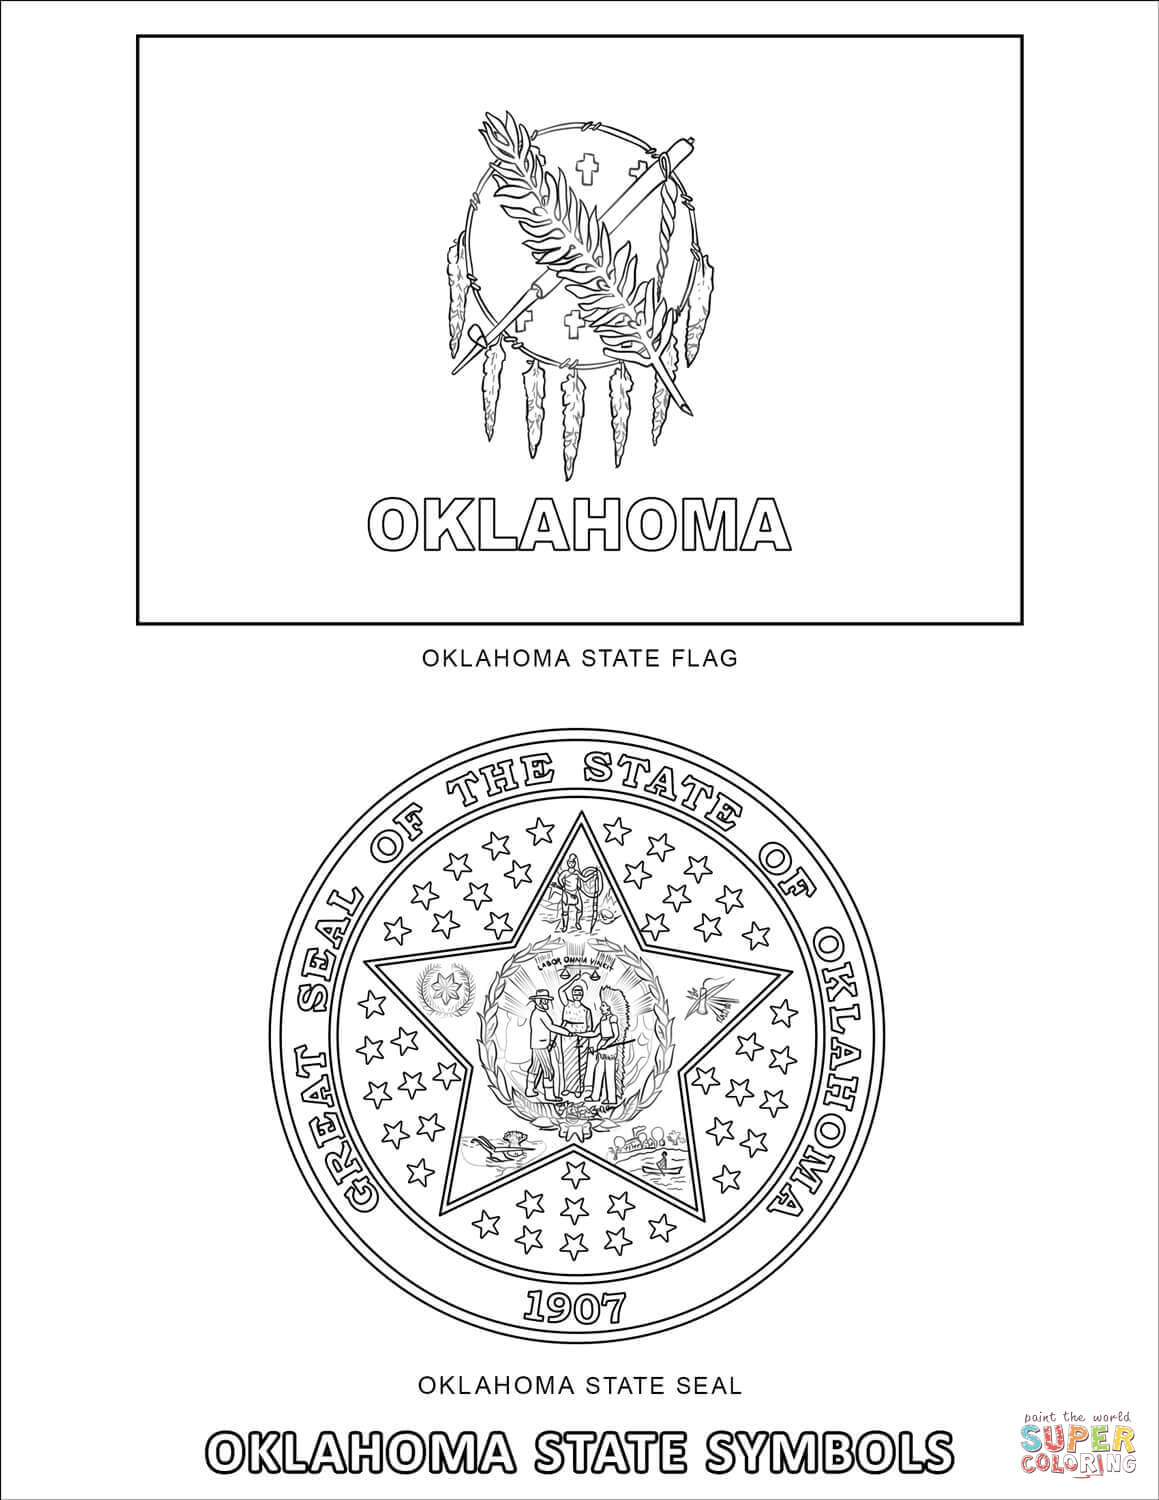 Oklahoma State Symbols Coloring Page